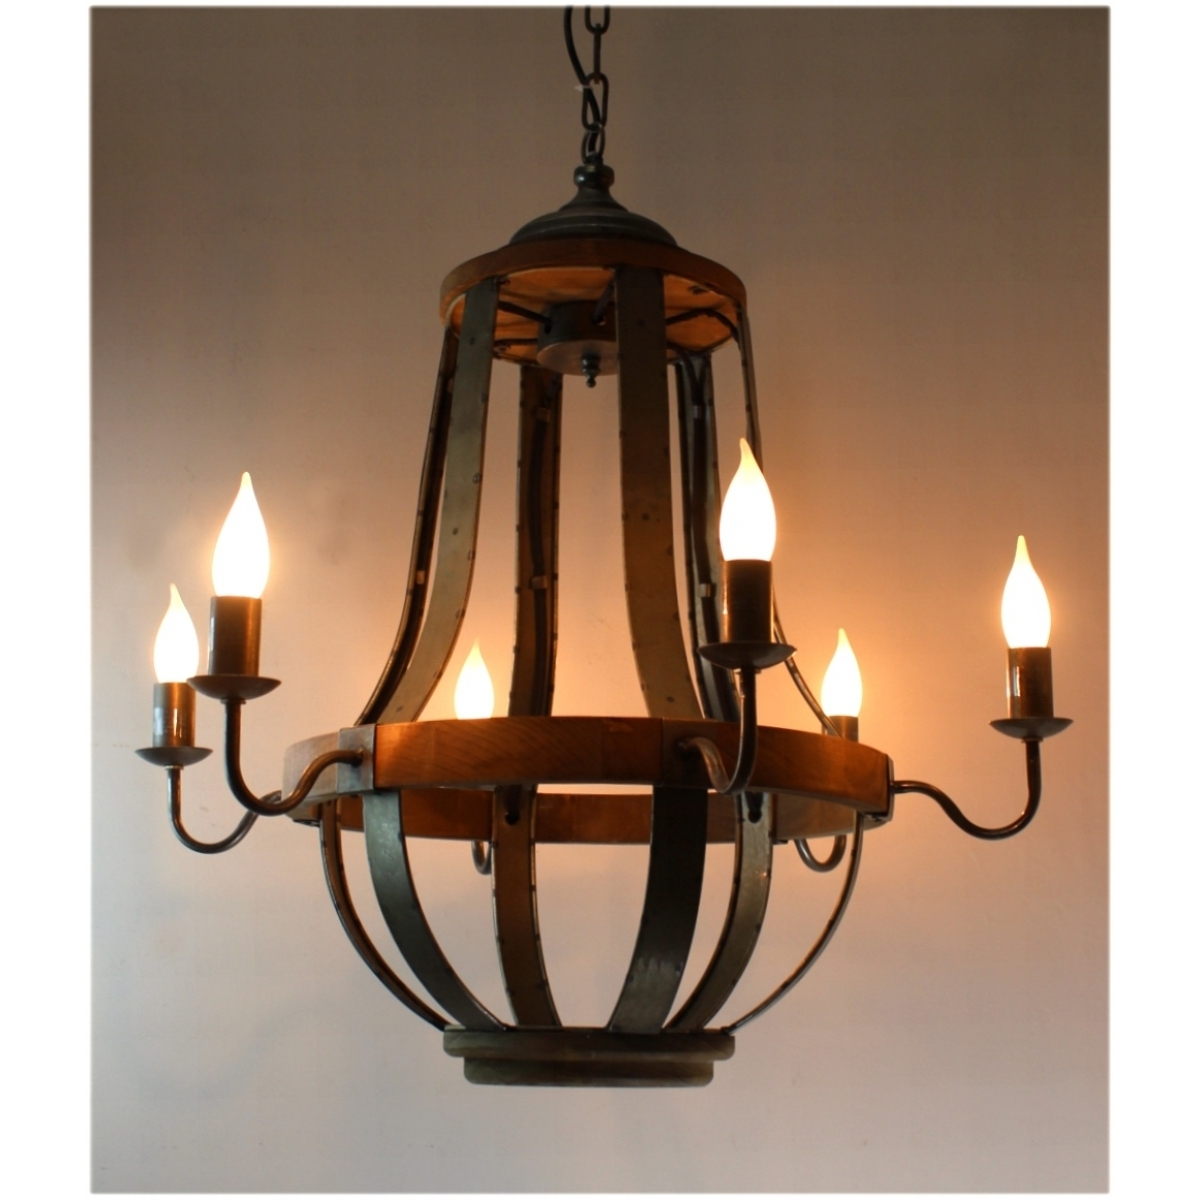 Most Recent $579 Iron Strap And Aged Wood Chandelier French Country Vintage Inside Vintage Style Chandelier (View 2 of 20)